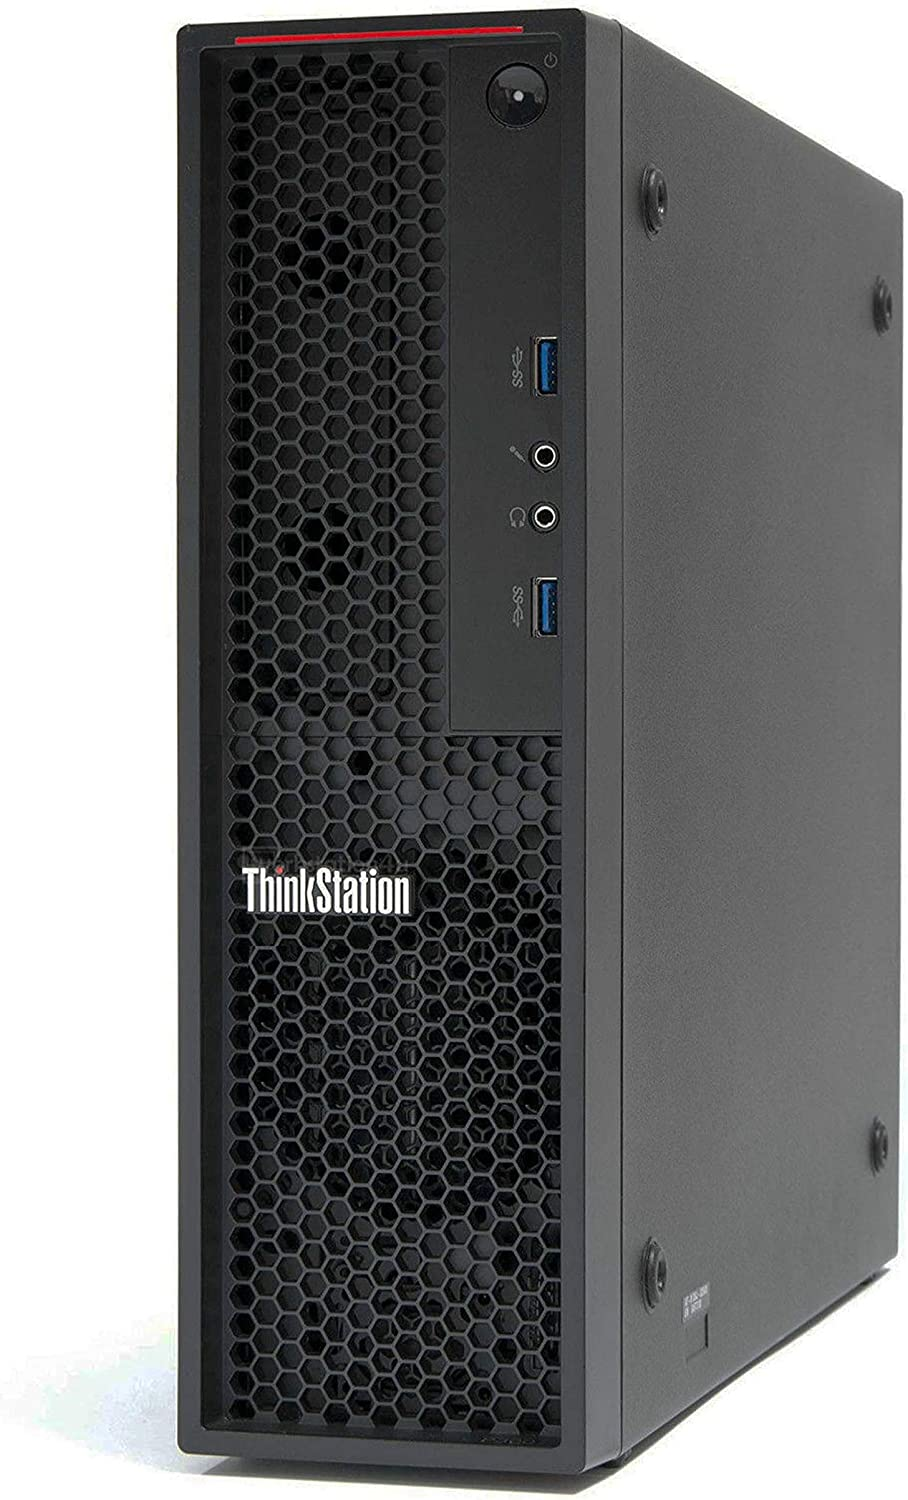 Lenovo ThinkStation P300 Small Form Desktop, Quad Core i7 4770 3.4Ghz, 8GB DDR3, 1TB Hard Drive, Windows 10 Pro (Renewed)